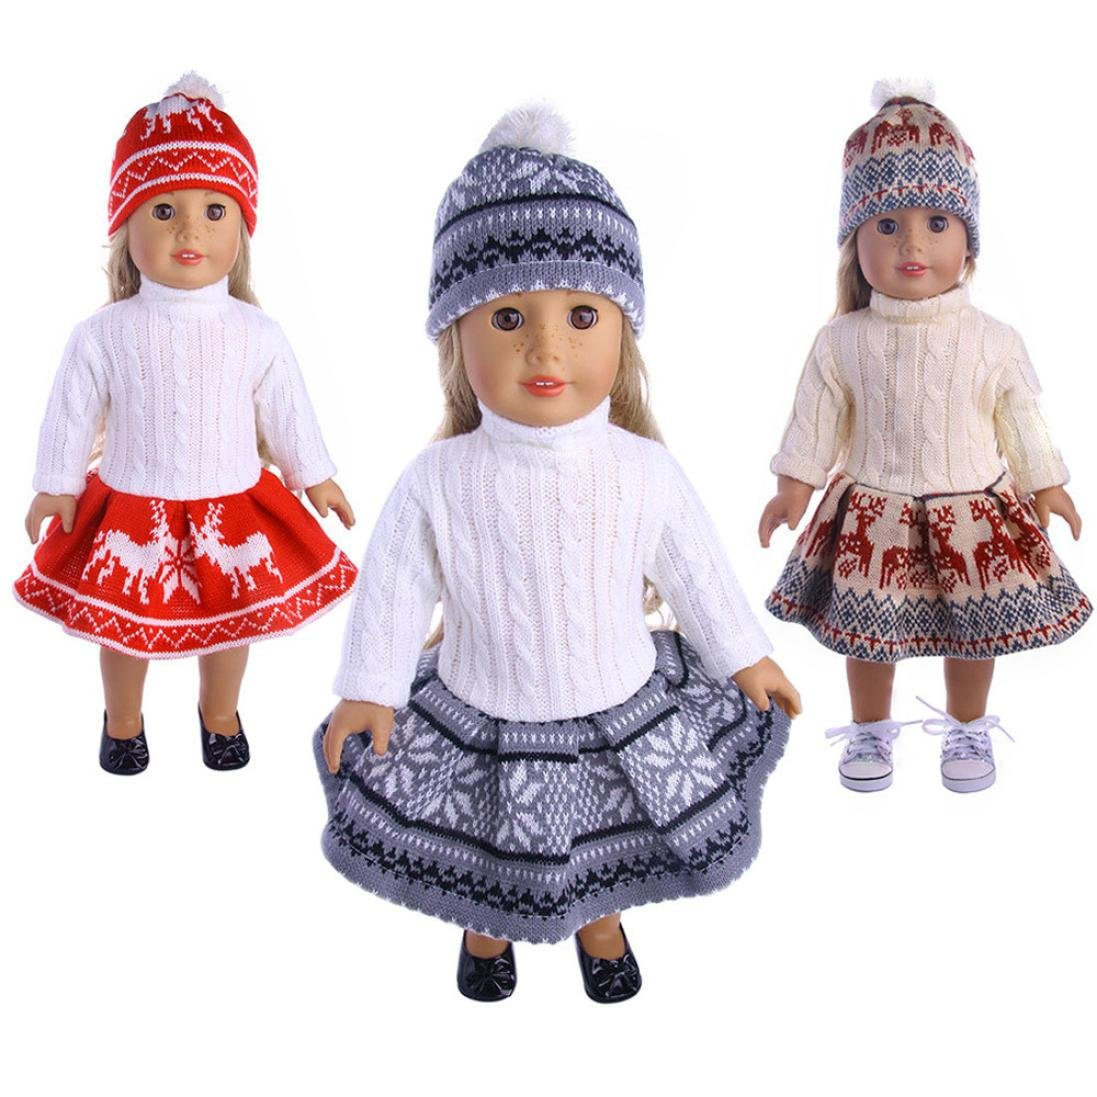 WensLTD Clearance! Cute Sweater Outfit Reindeer Snowman Sweater & Cap For 18 inch American Girl Doll